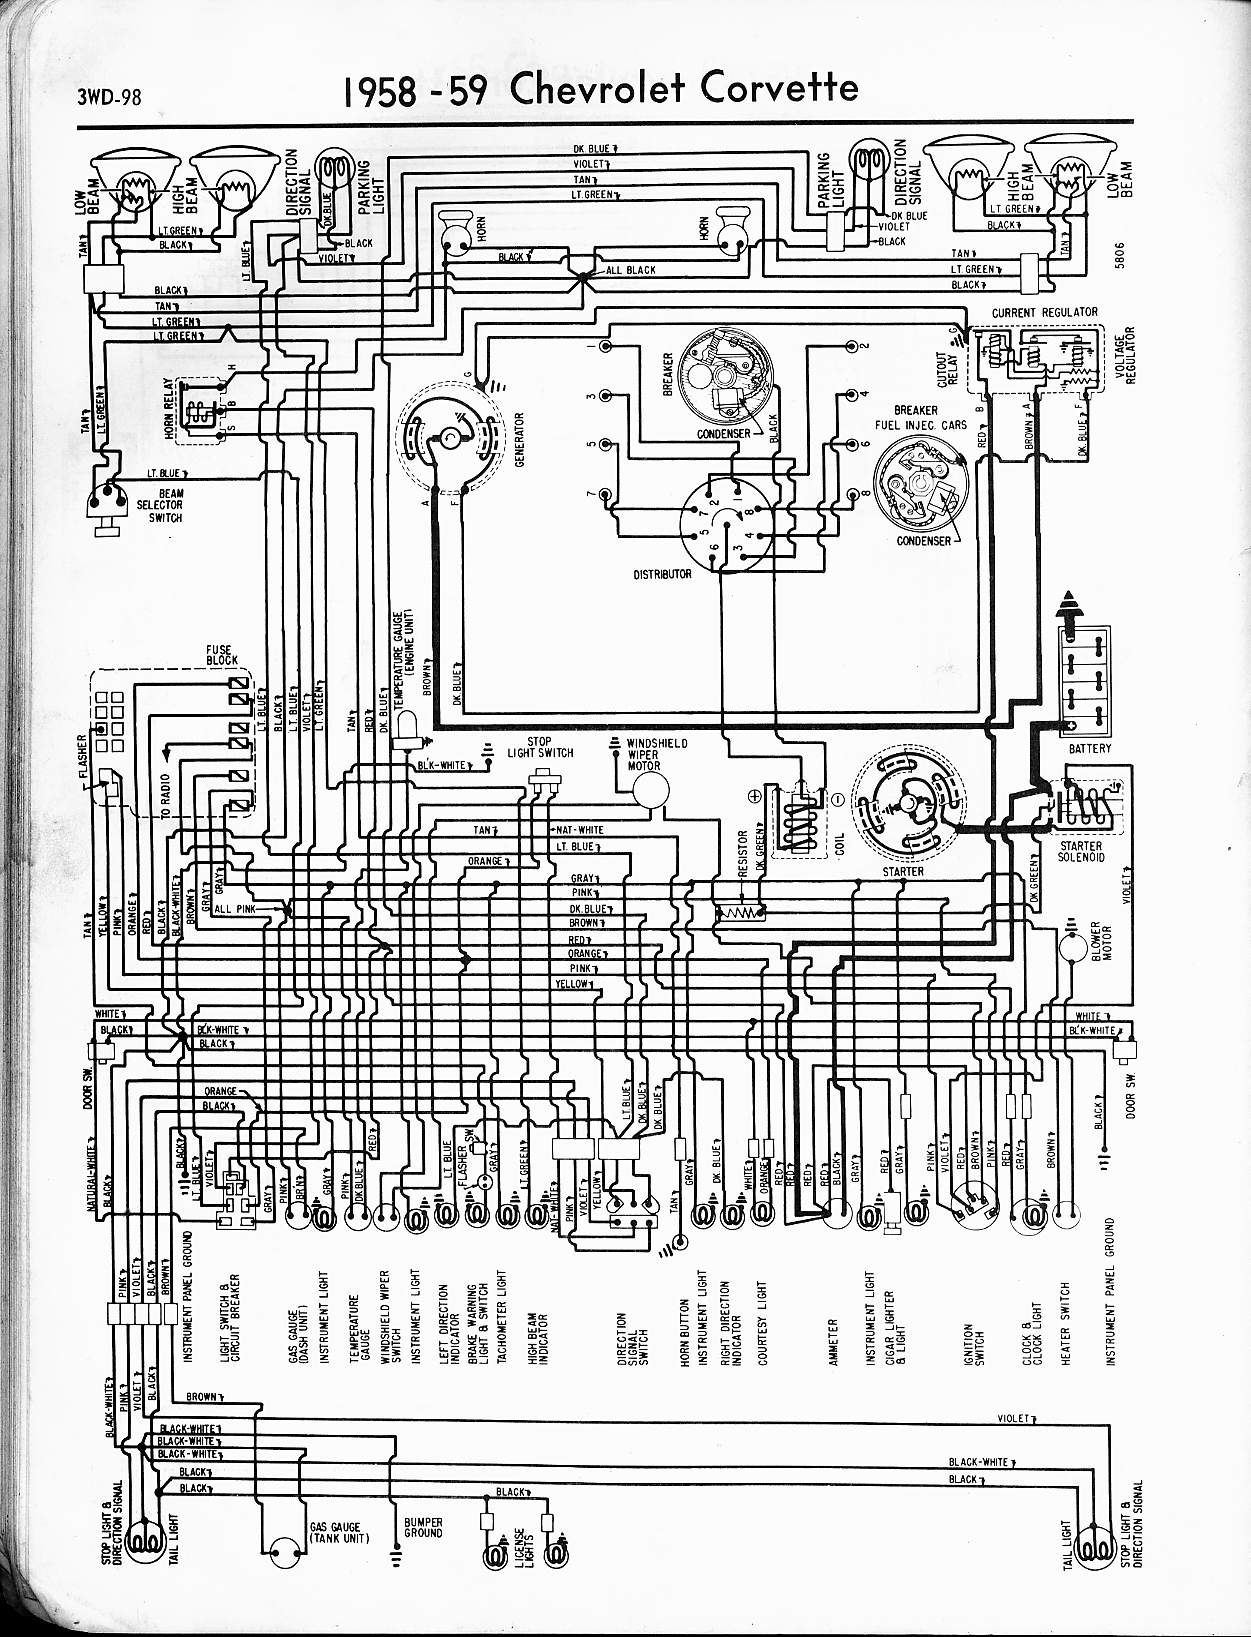 MWireChev58_3WD 098 57 65 chevy wiring diagrams 1956 Chevy Convertible at crackthecode.co